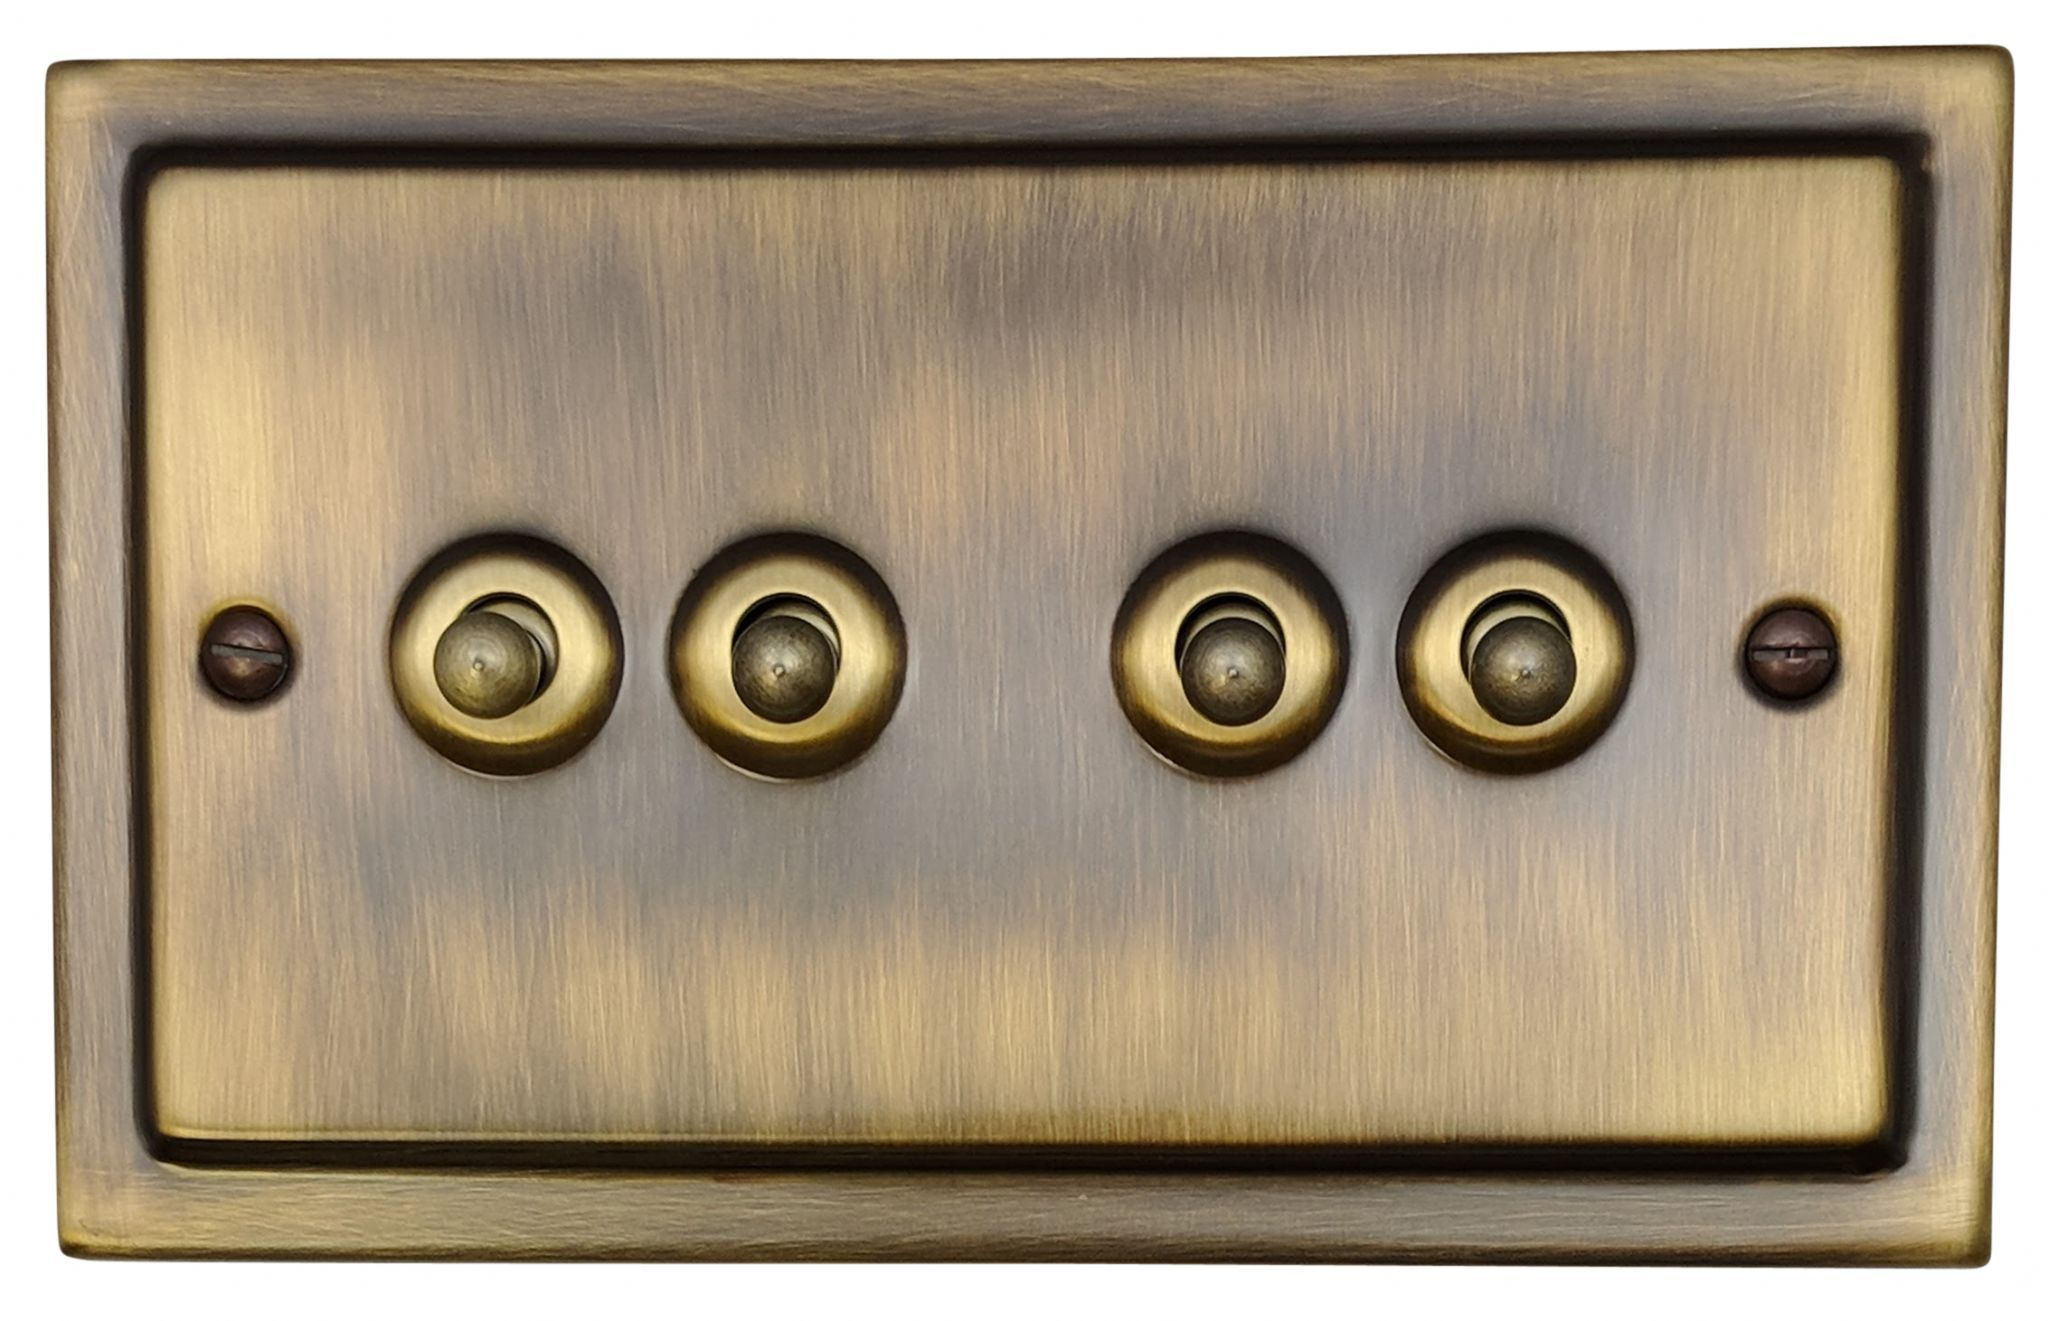 G H Tab284 Trimline Plate Antique Bronze 4 Gang 1 Or 2 Way Toggle Light Switch